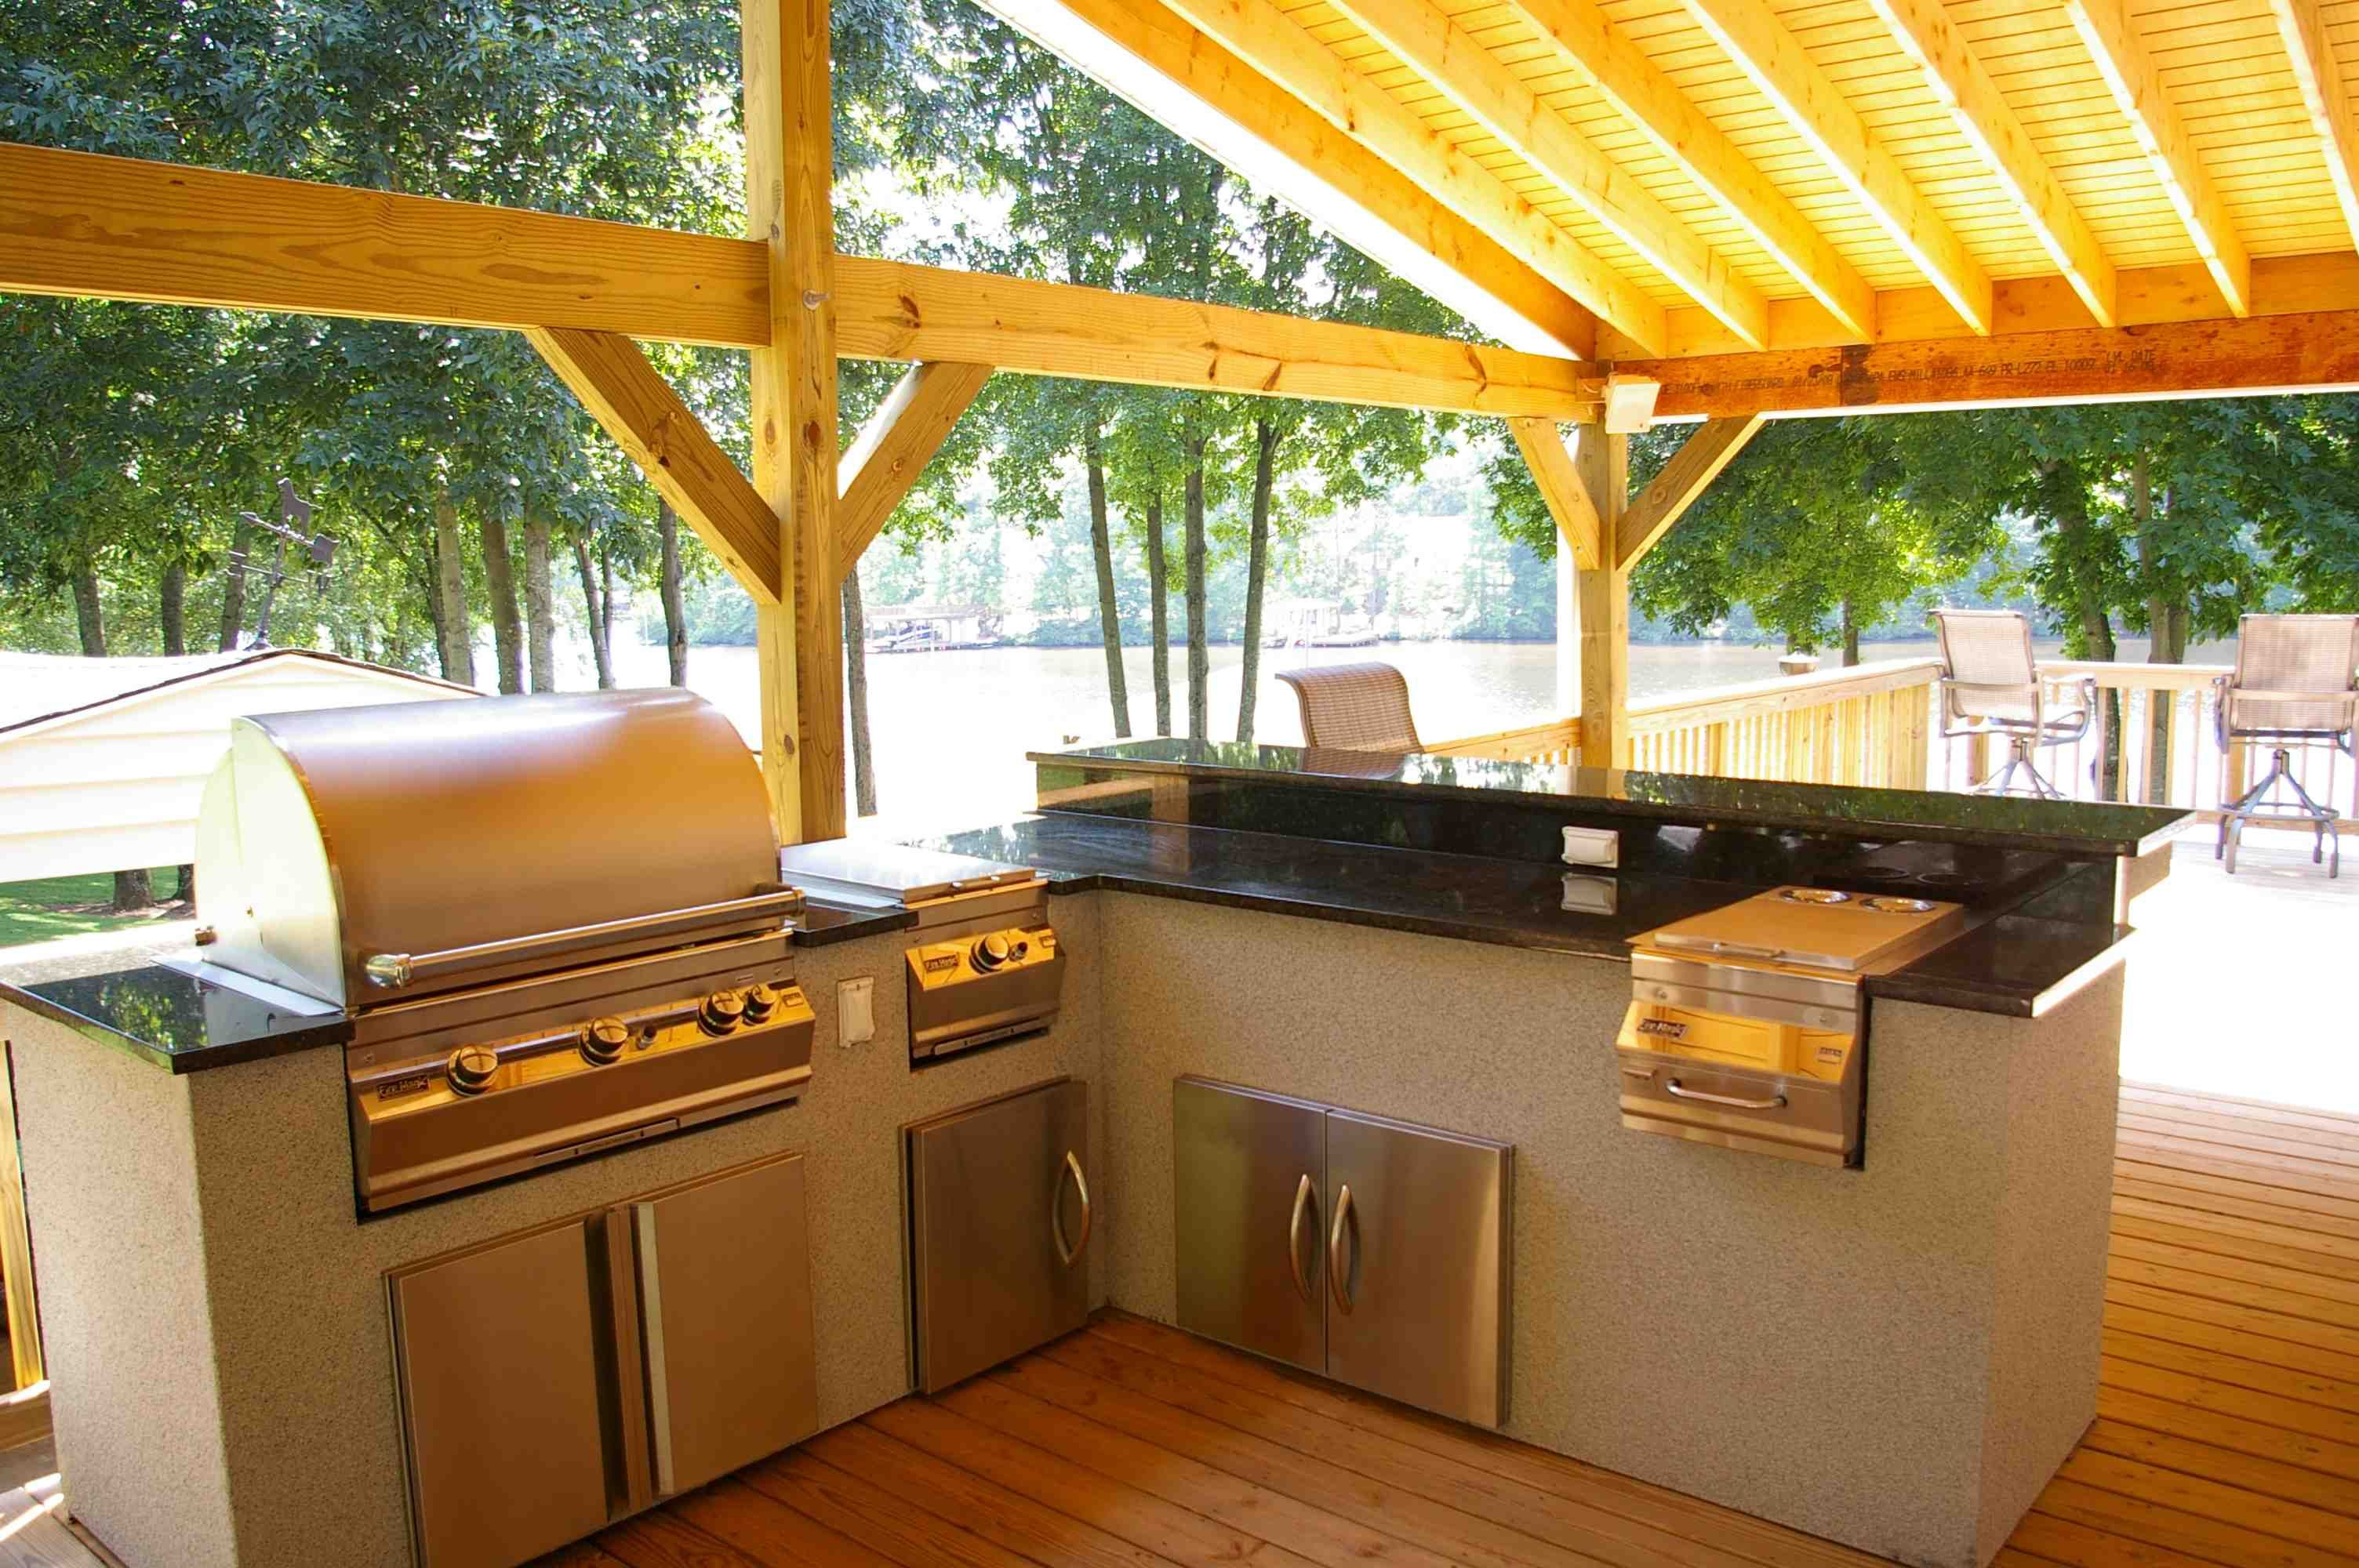 awesome best outdoor kitchen ideas on a budget covered outdoor kitchens backyard kitchen on outdoor kitchen ideas on a budget id=67229